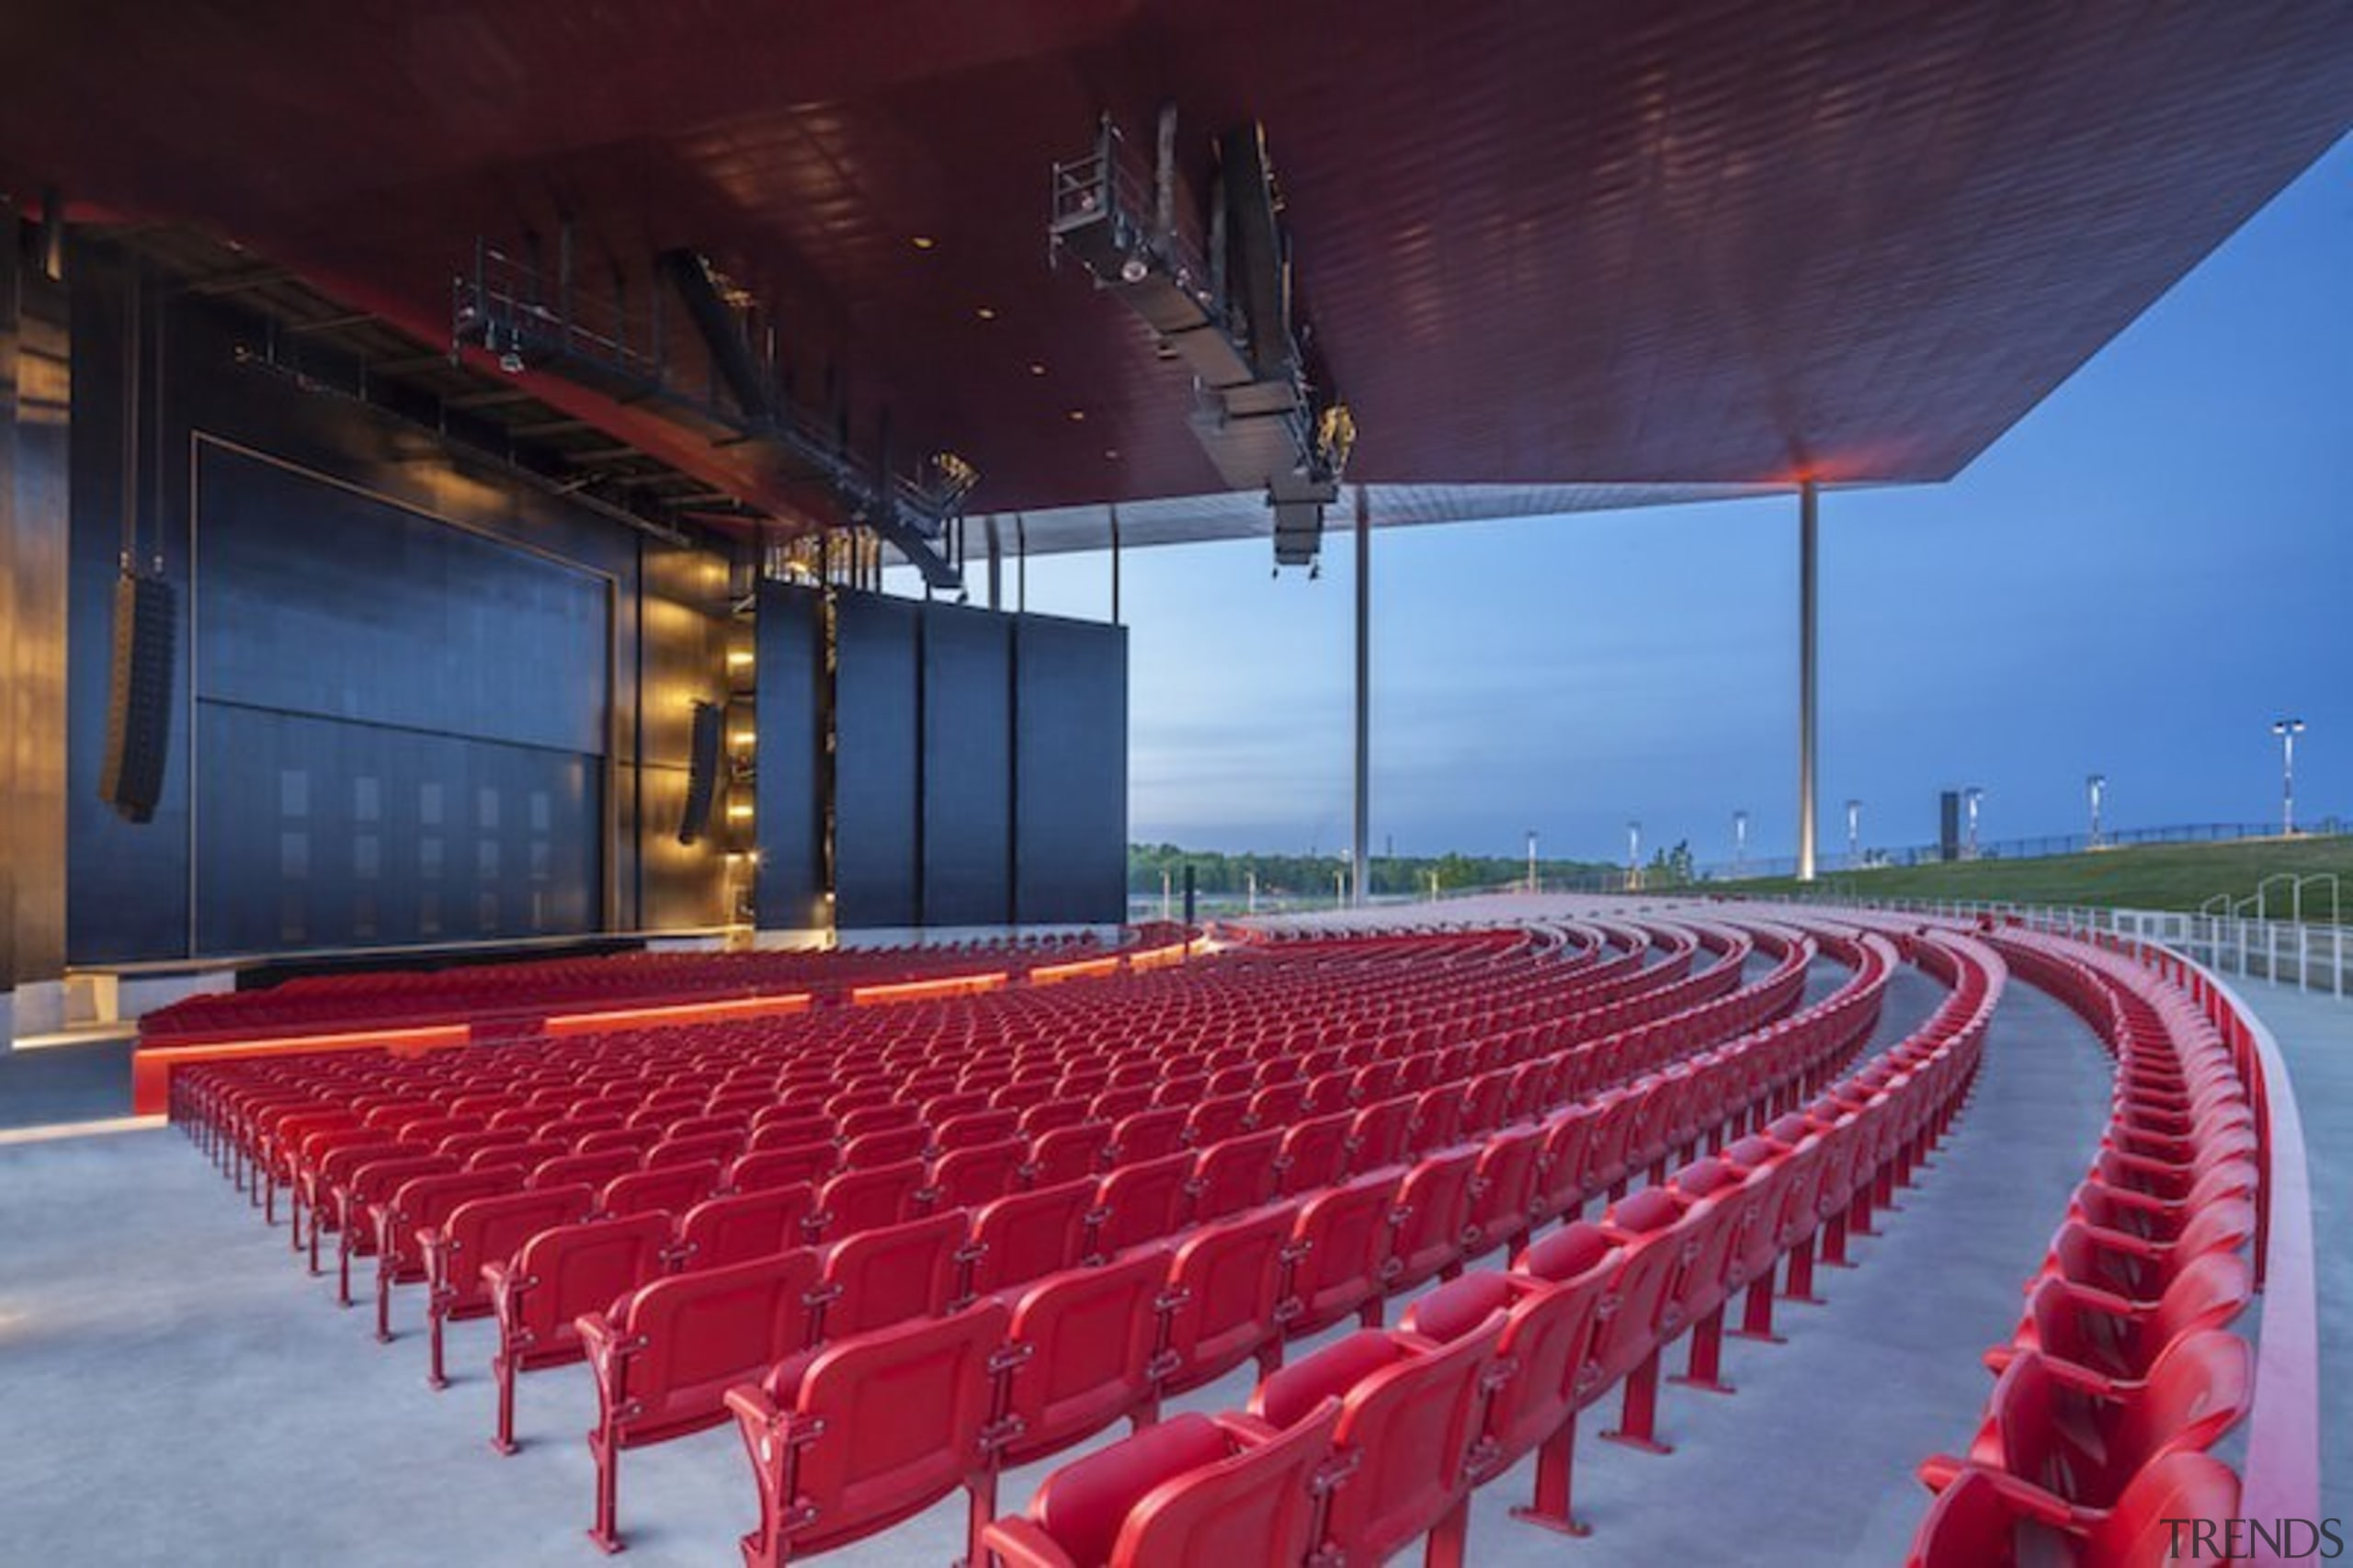 It's the ideal venue when the sun's shining architecture, auditorium, convention center, performing arts center, structure, theatre, red